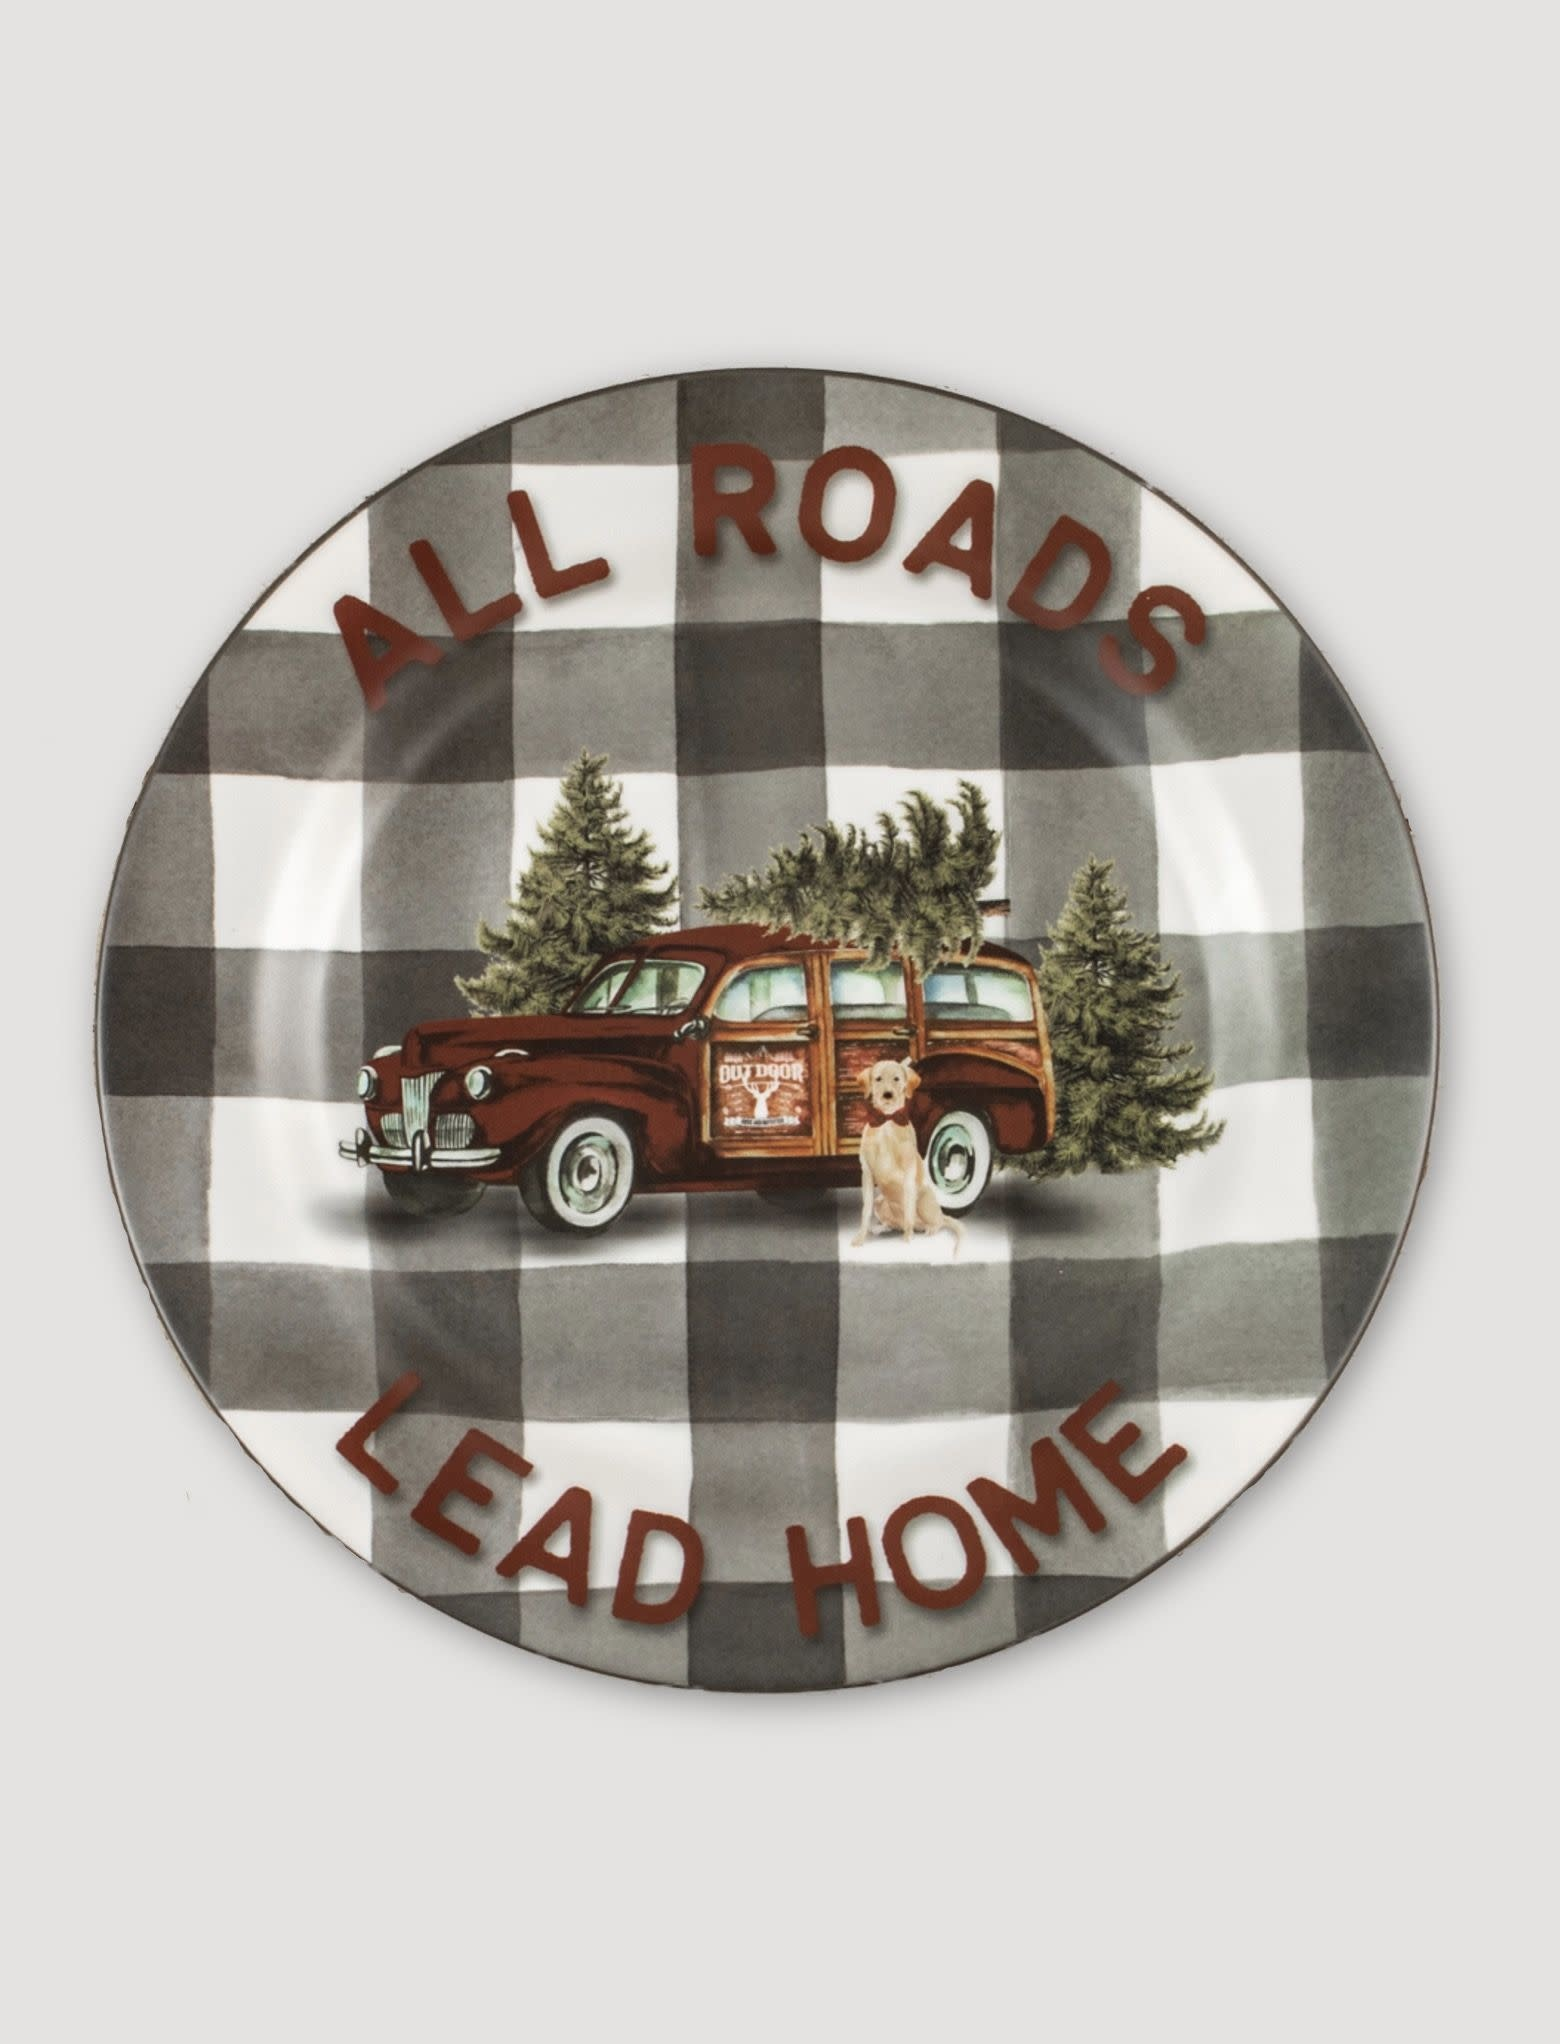 Ragon House Collection All Roads Lead Home Plate - 10""